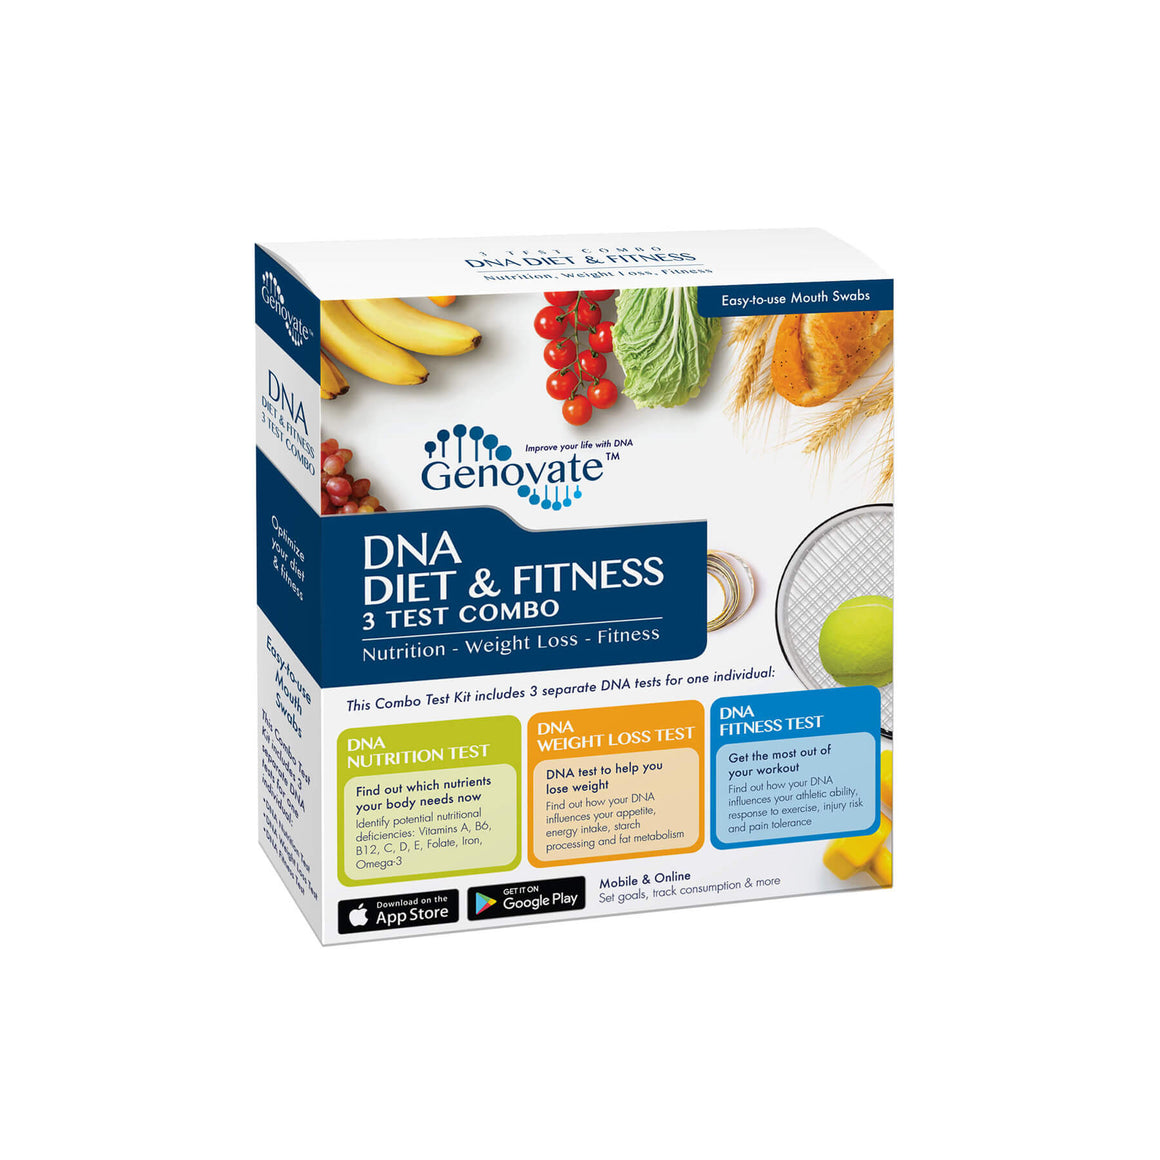 DNA Diet & Fitness 3 Test Combo - Precision Lab Works